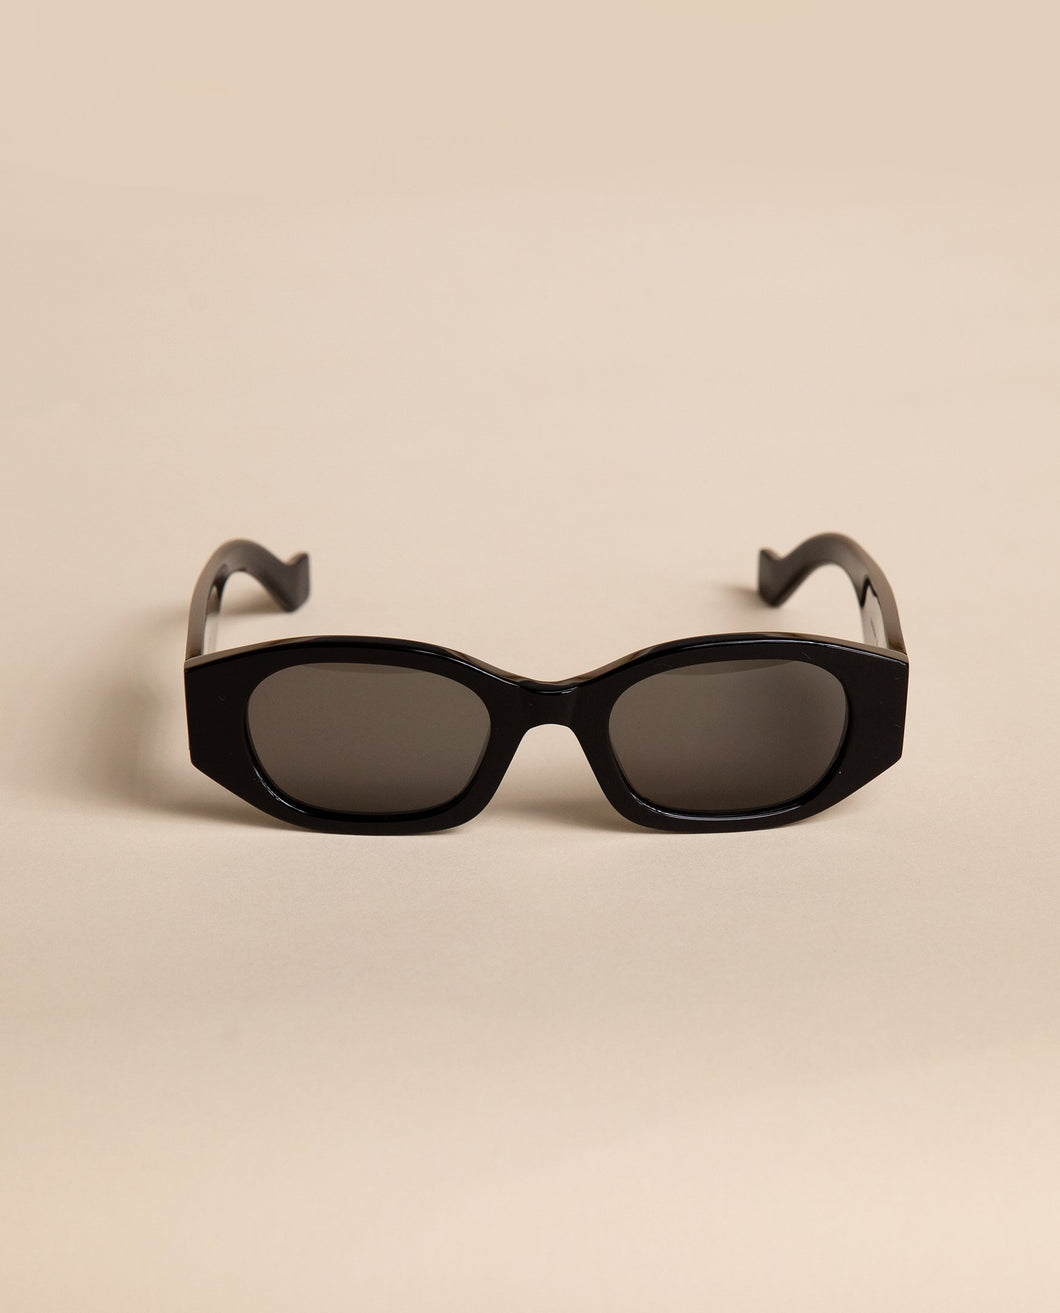 Oblong, Noir, Eyewear - Lindner Fashion